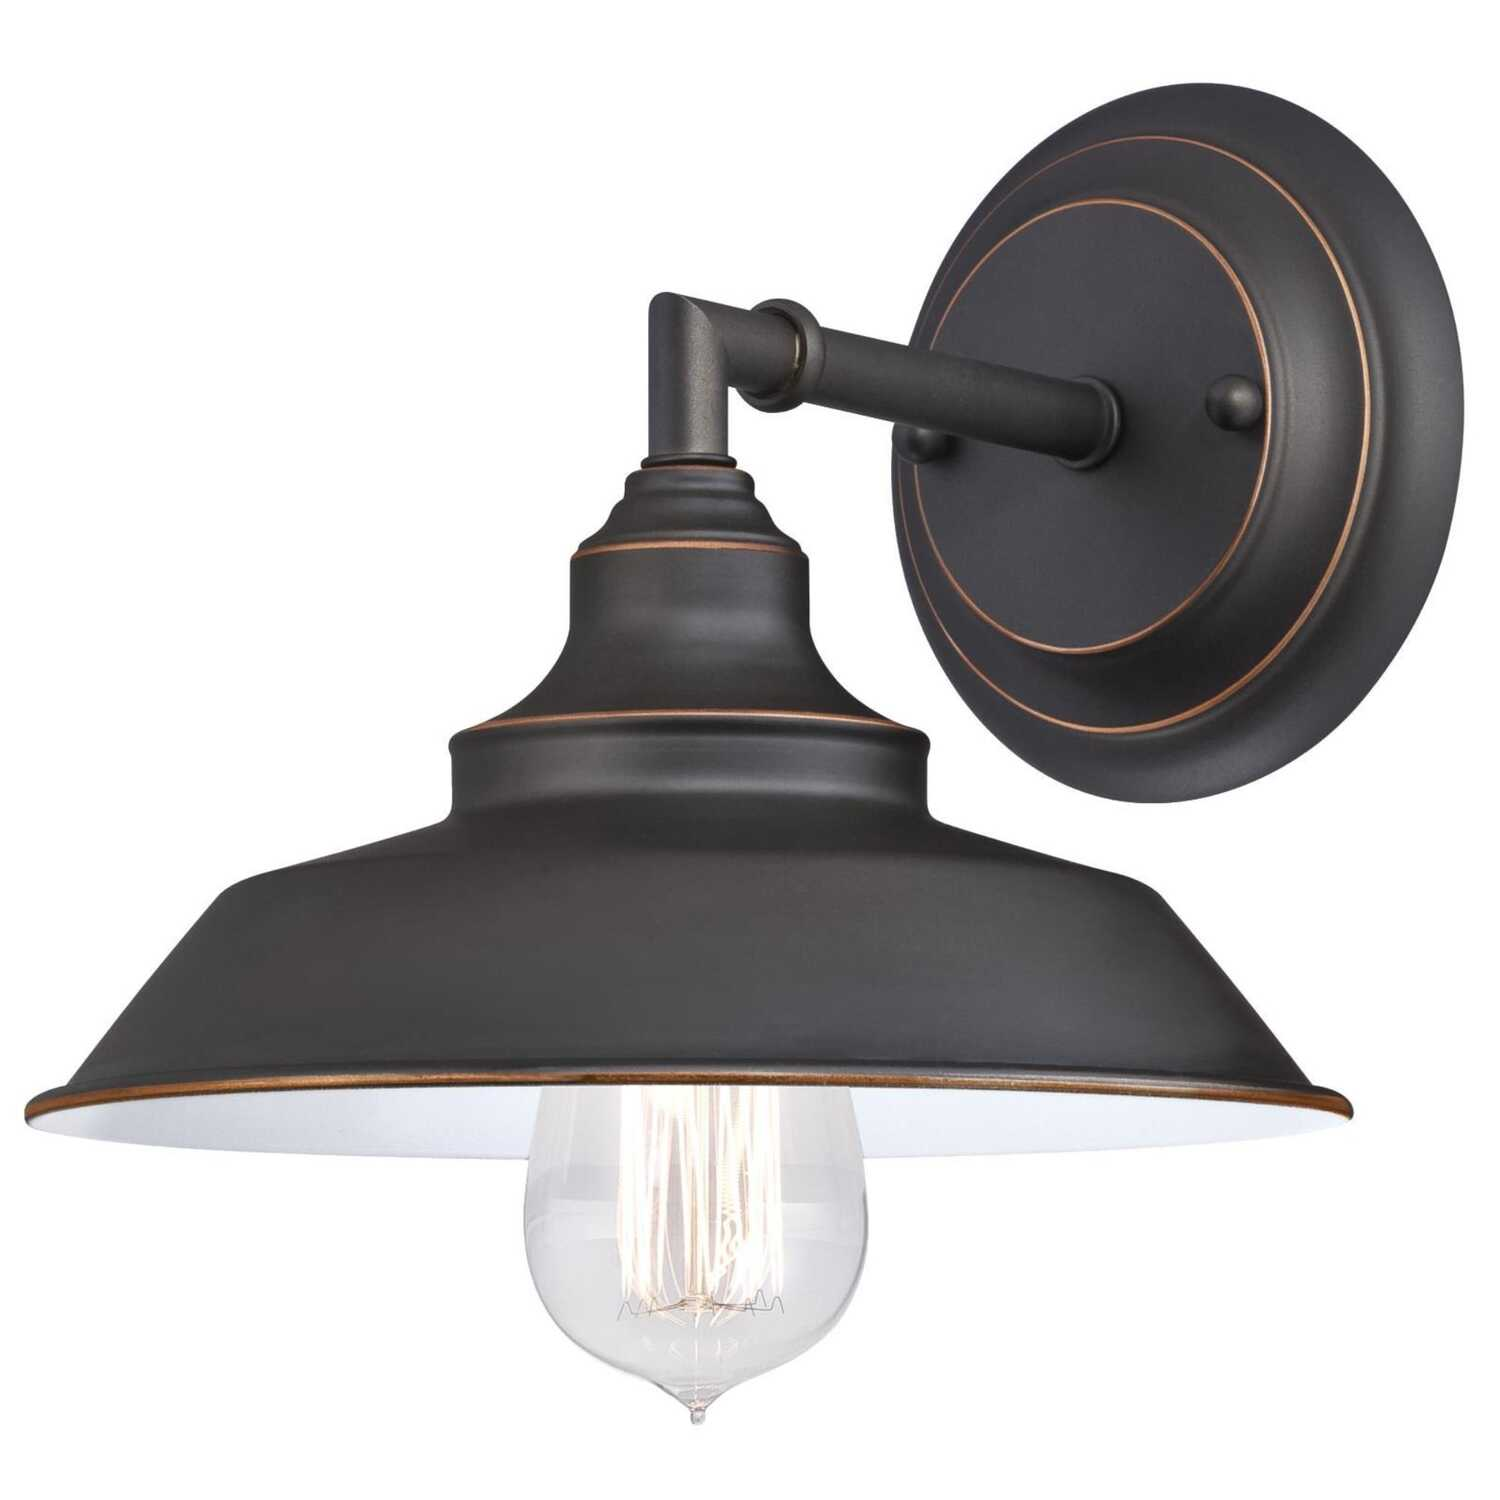 Westinghouse  Oil Rubbed Bronze  Wall Sconce  1